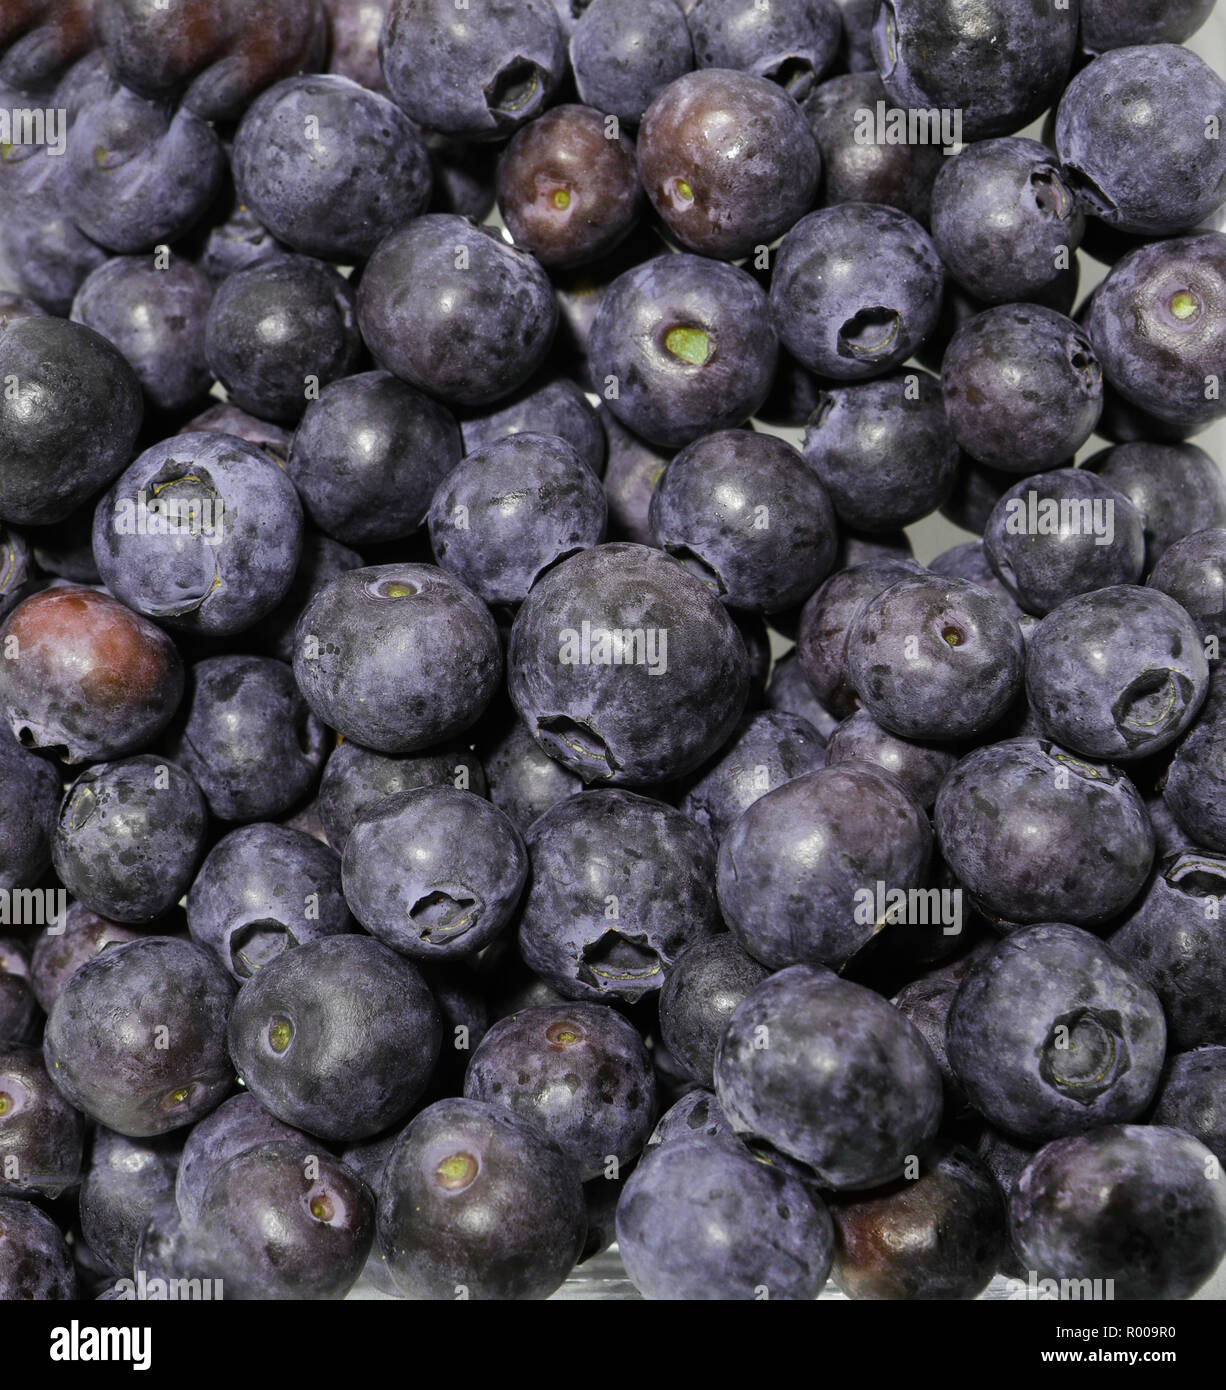 Blueberries. Antioxidant. Fruits concepts. France - Stock Image